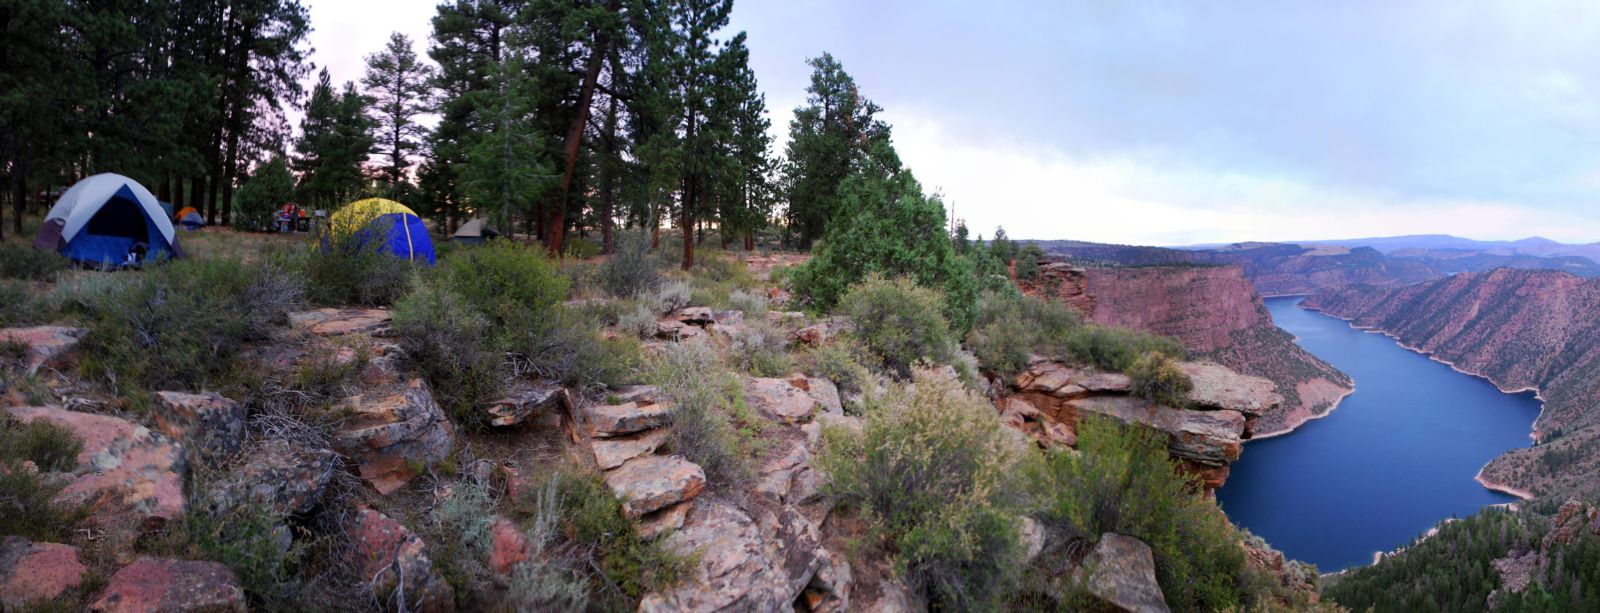 Camping on the Canyon Rim trail Flaming Gorge